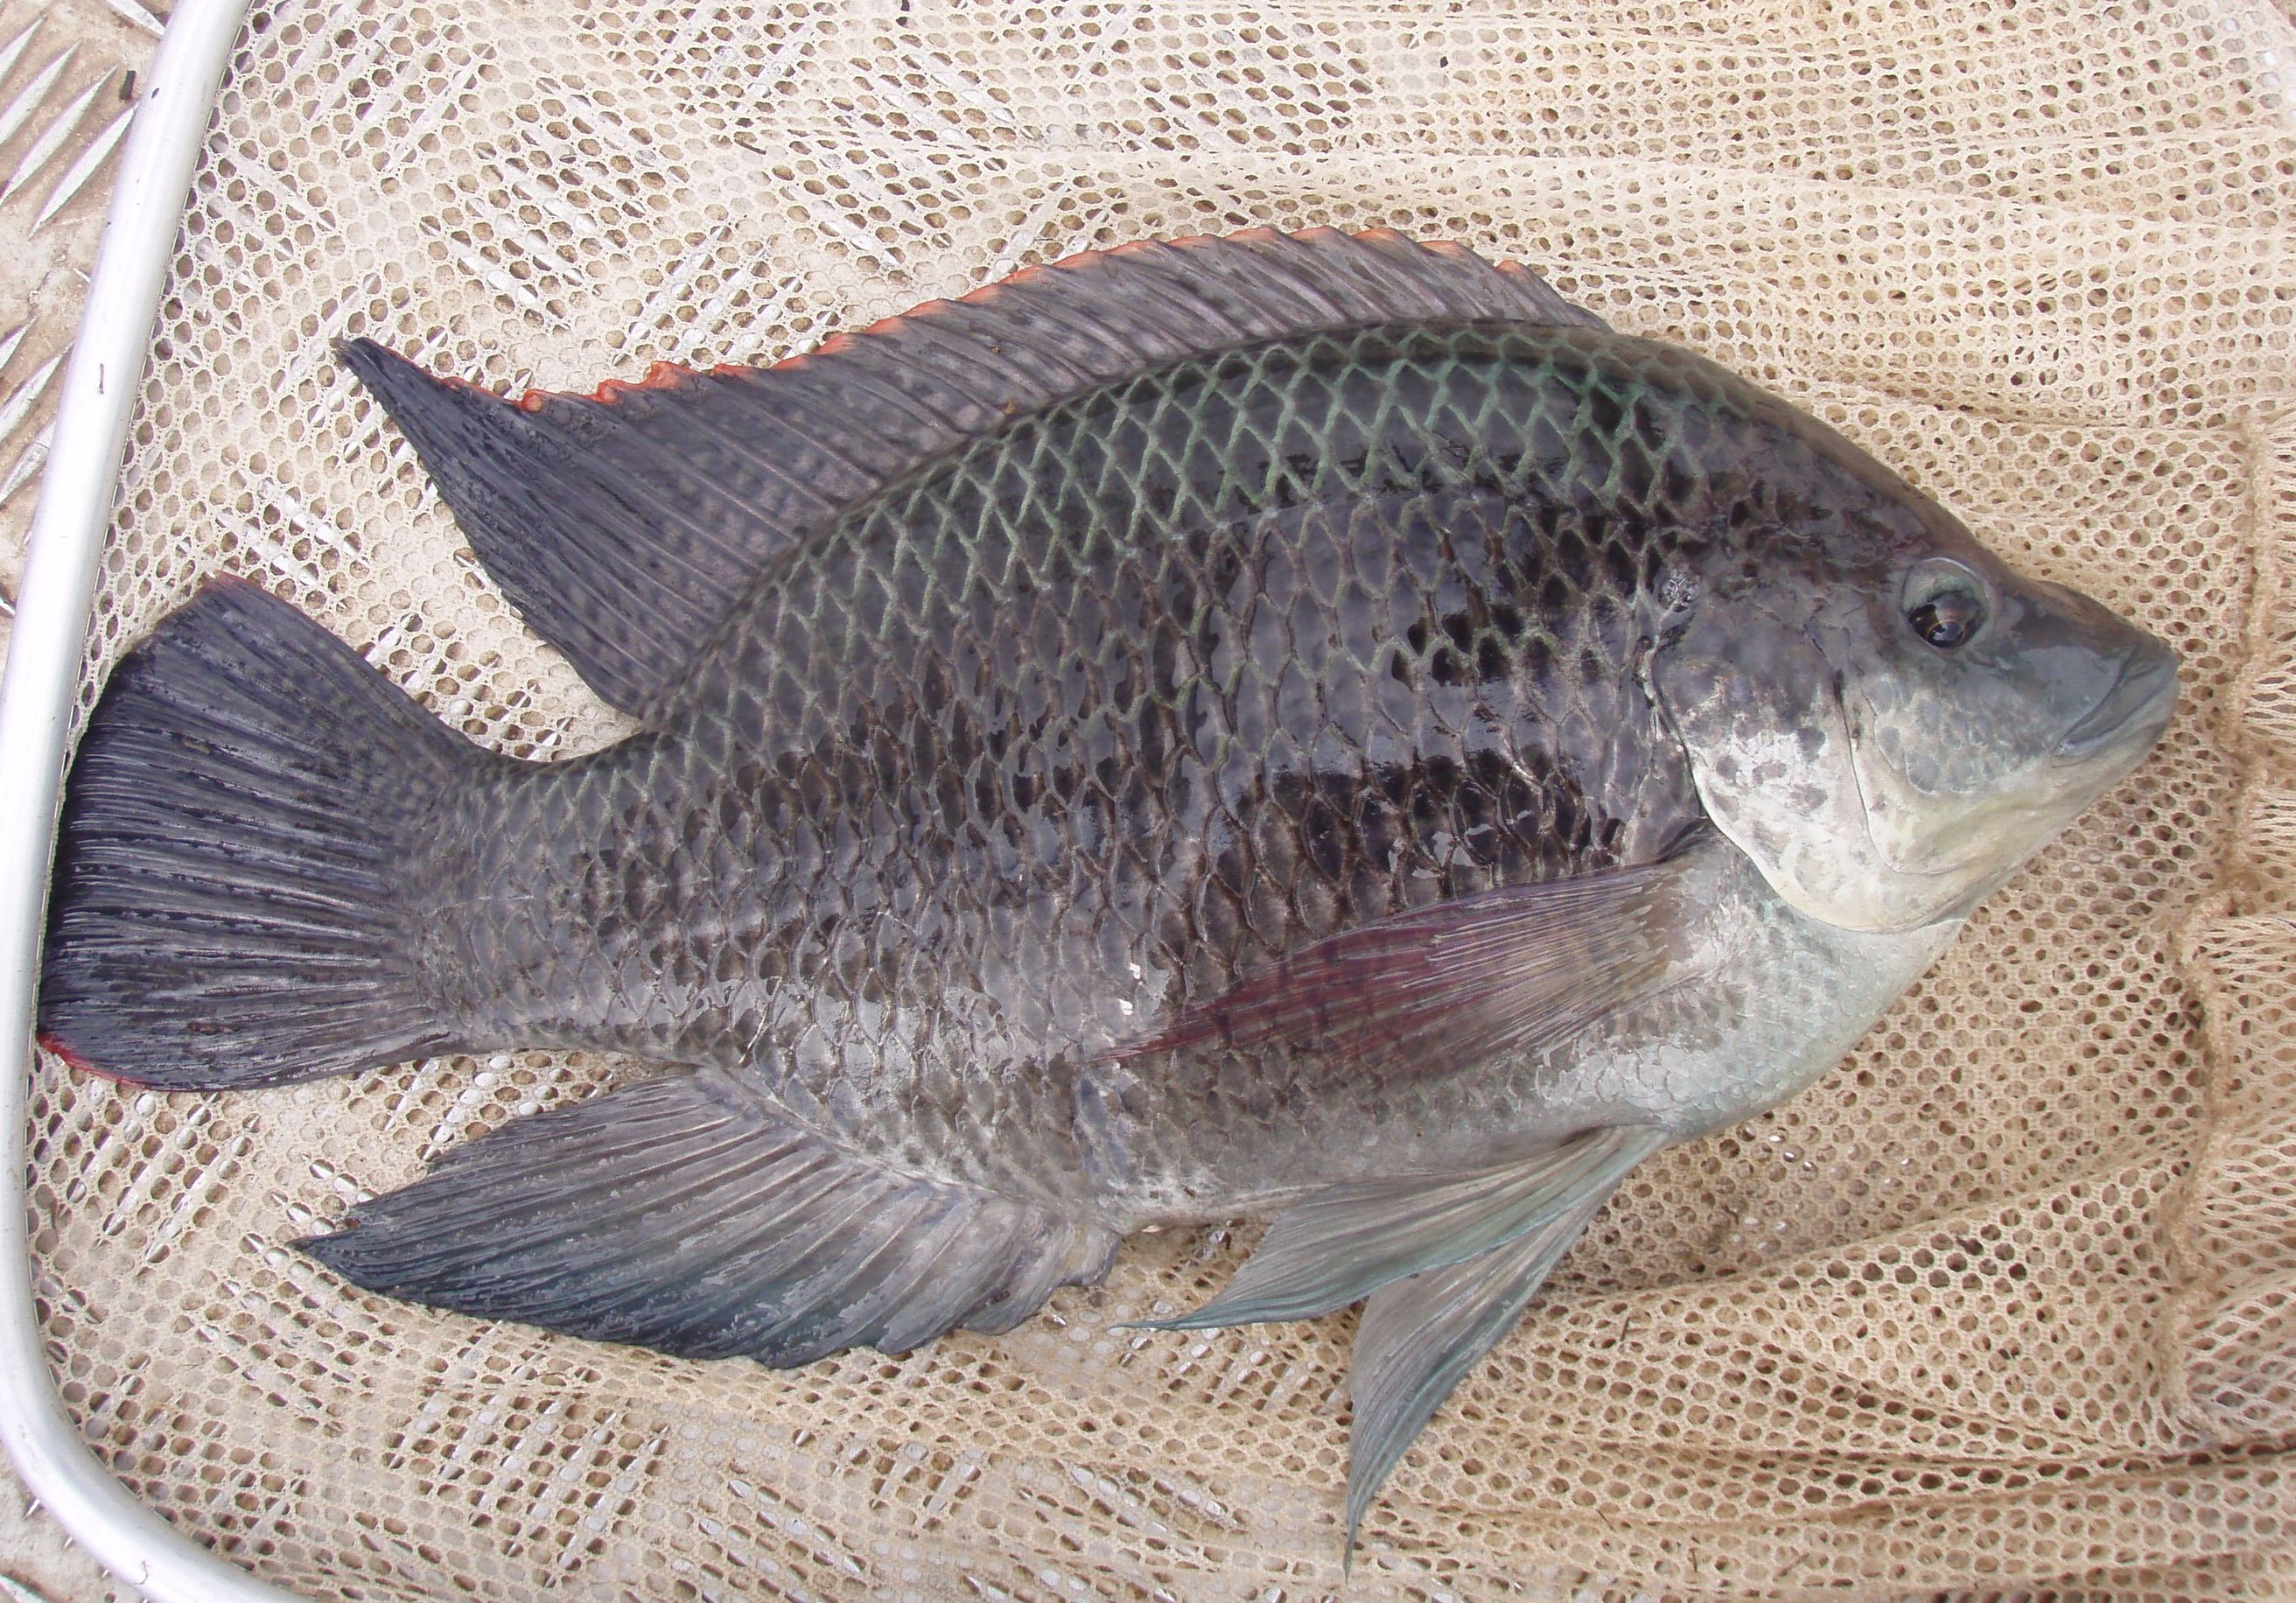 The potential for mozambique tilapia to invade the murray for Is tilapia a bottom feeder fish